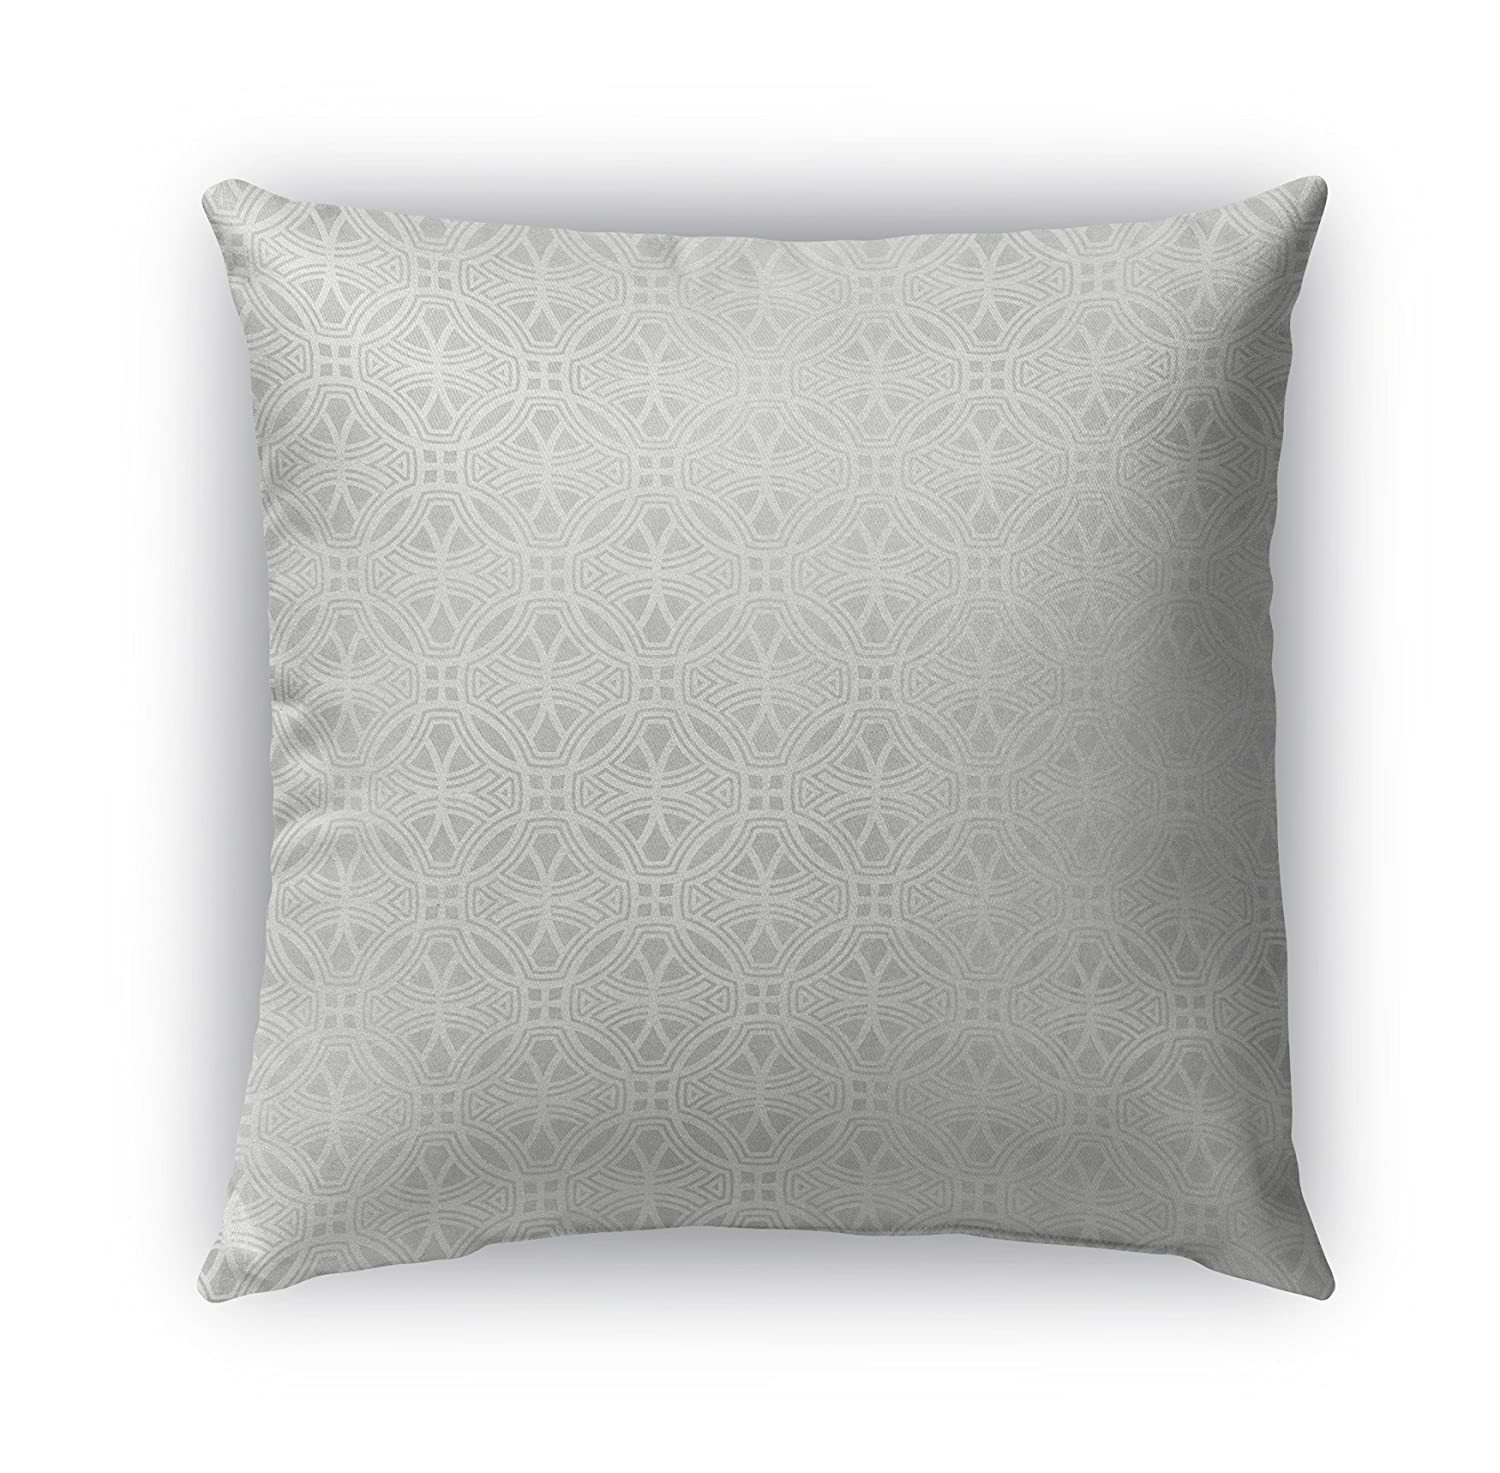 TELAVC8014OD20 KAVKA Designs Collegno Indoor-Outdoor Pillow, Size: 20X20X6 - Grey - Encompass Collection